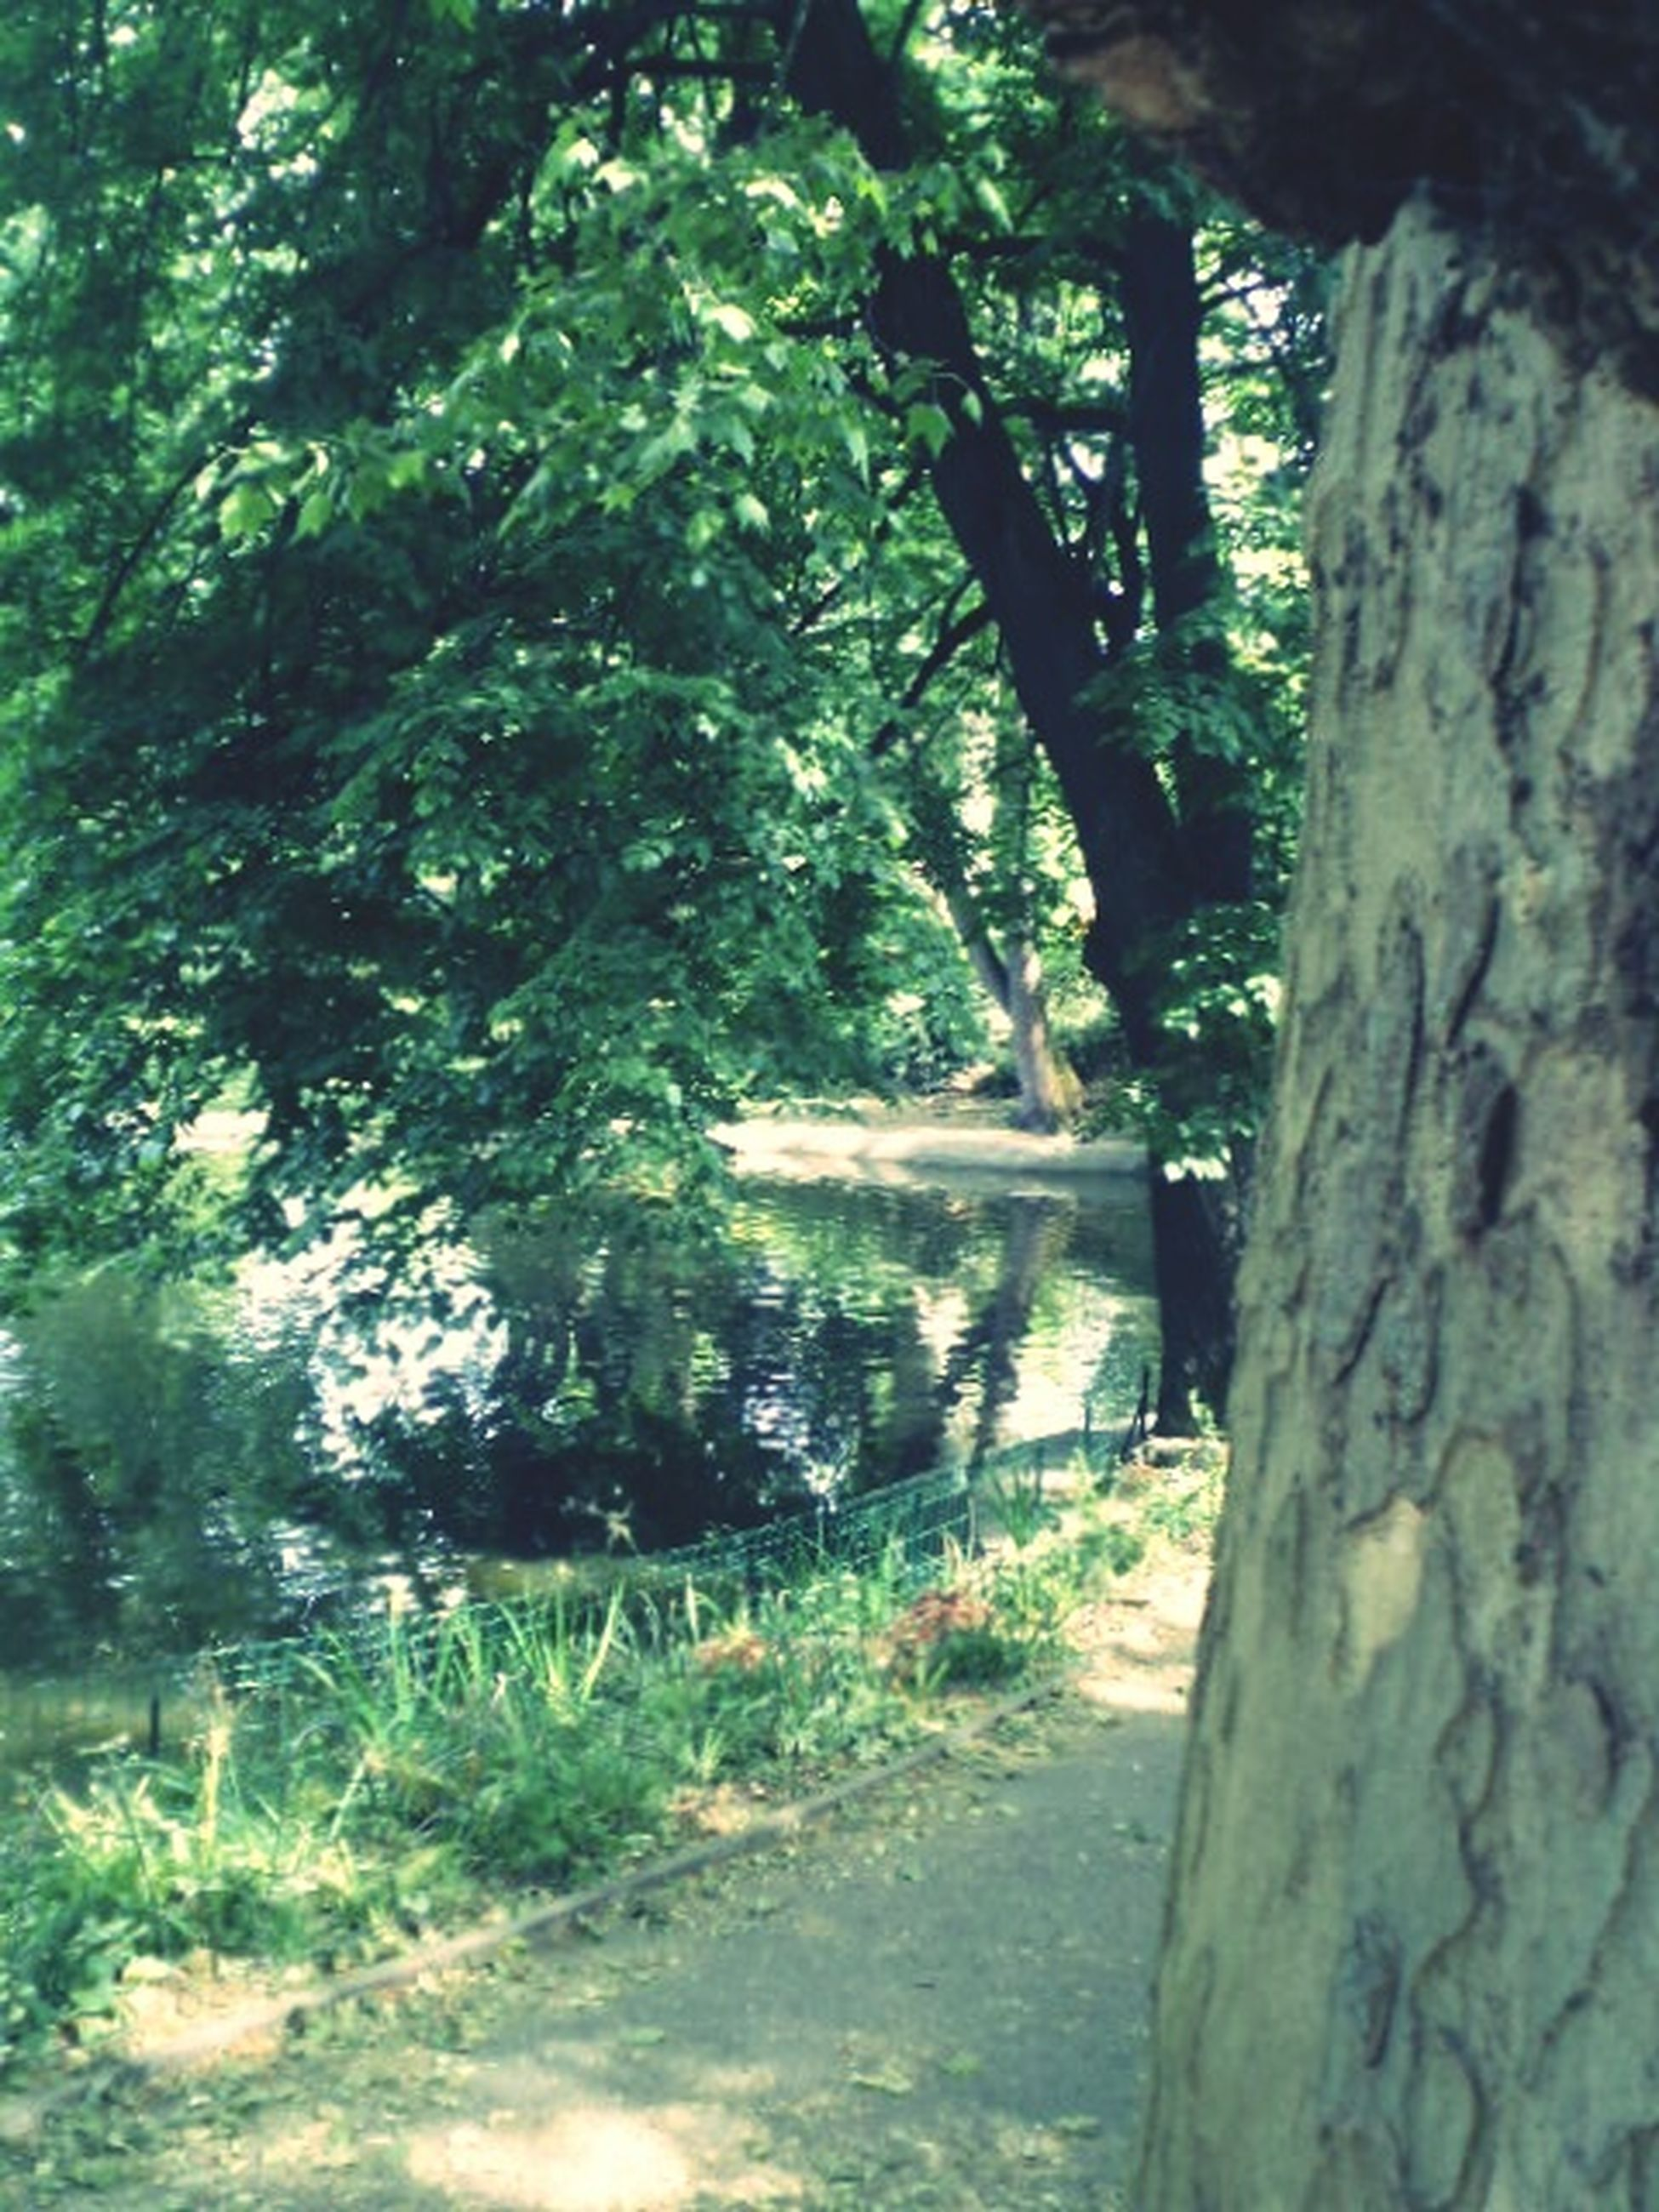 tree, growth, tranquility, tree trunk, nature, green color, forest, beauty in nature, tranquil scene, water, scenics, sunlight, plant, day, outdoors, no people, branch, idyllic, non-urban scene, green